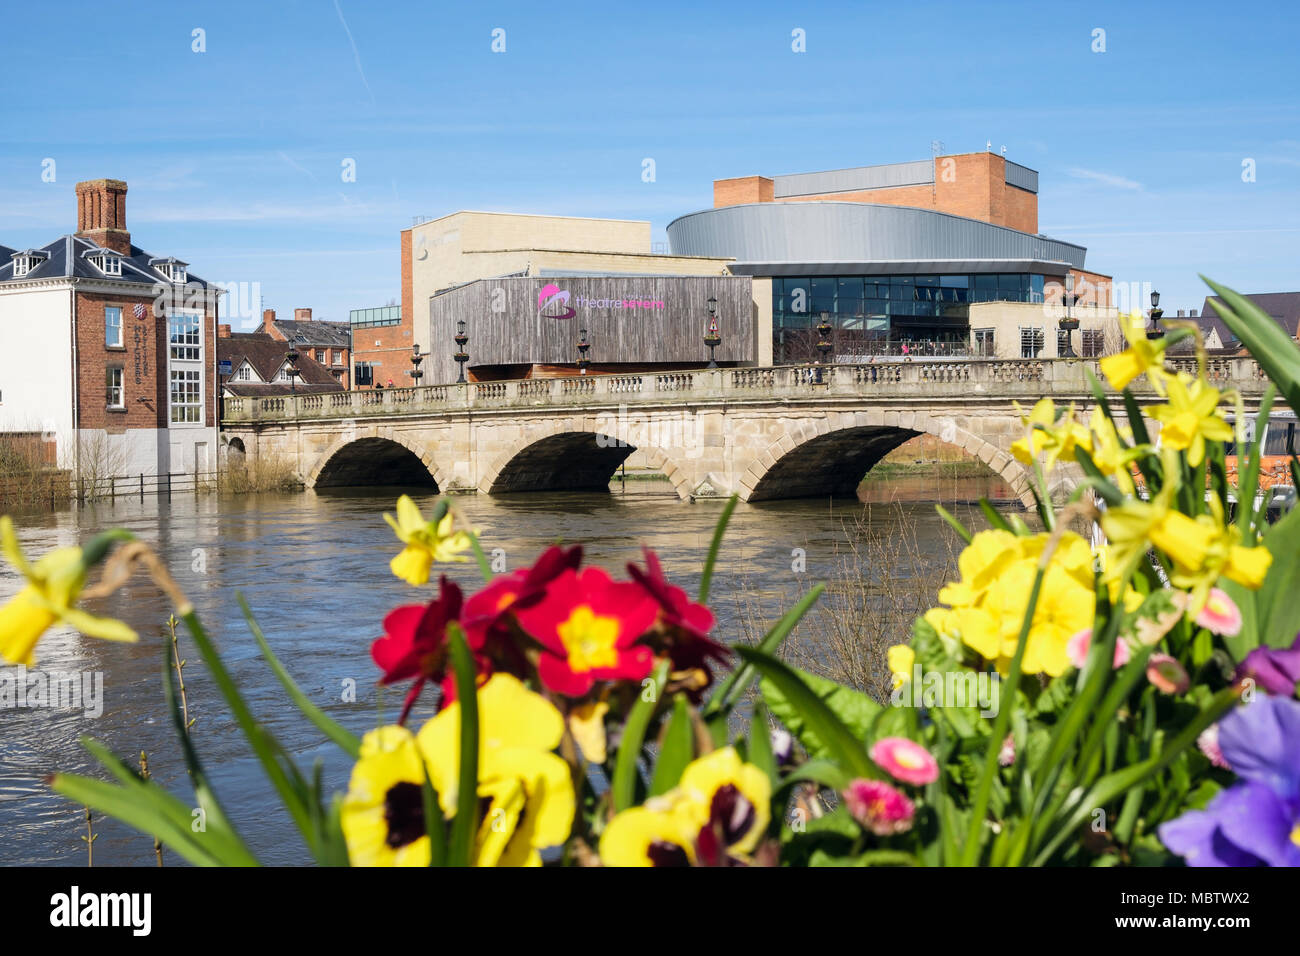 The Welsh Bridge over the River Severn with TheatreSevern beyond spring flowers in flower boxes. Shrewsbury, Shropshire, West Midlands, England, UK - Stock Image